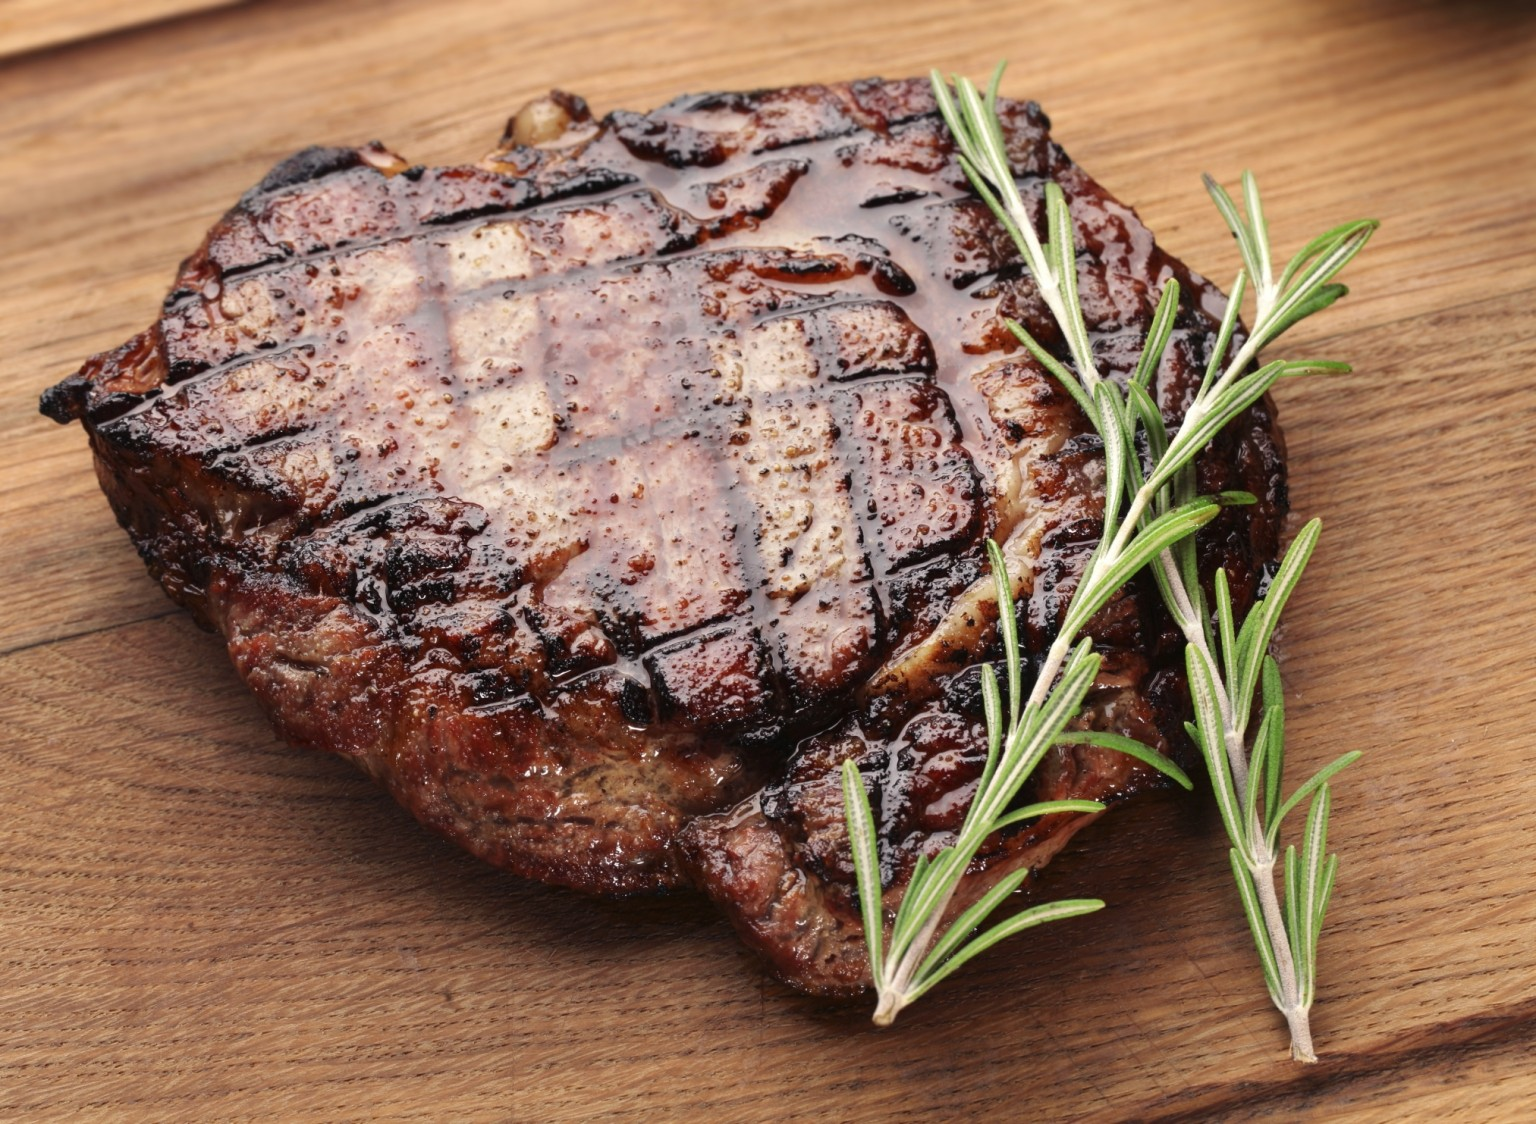 Grilling Steak: Tips On Cooking And Seasoning From BBQ ...